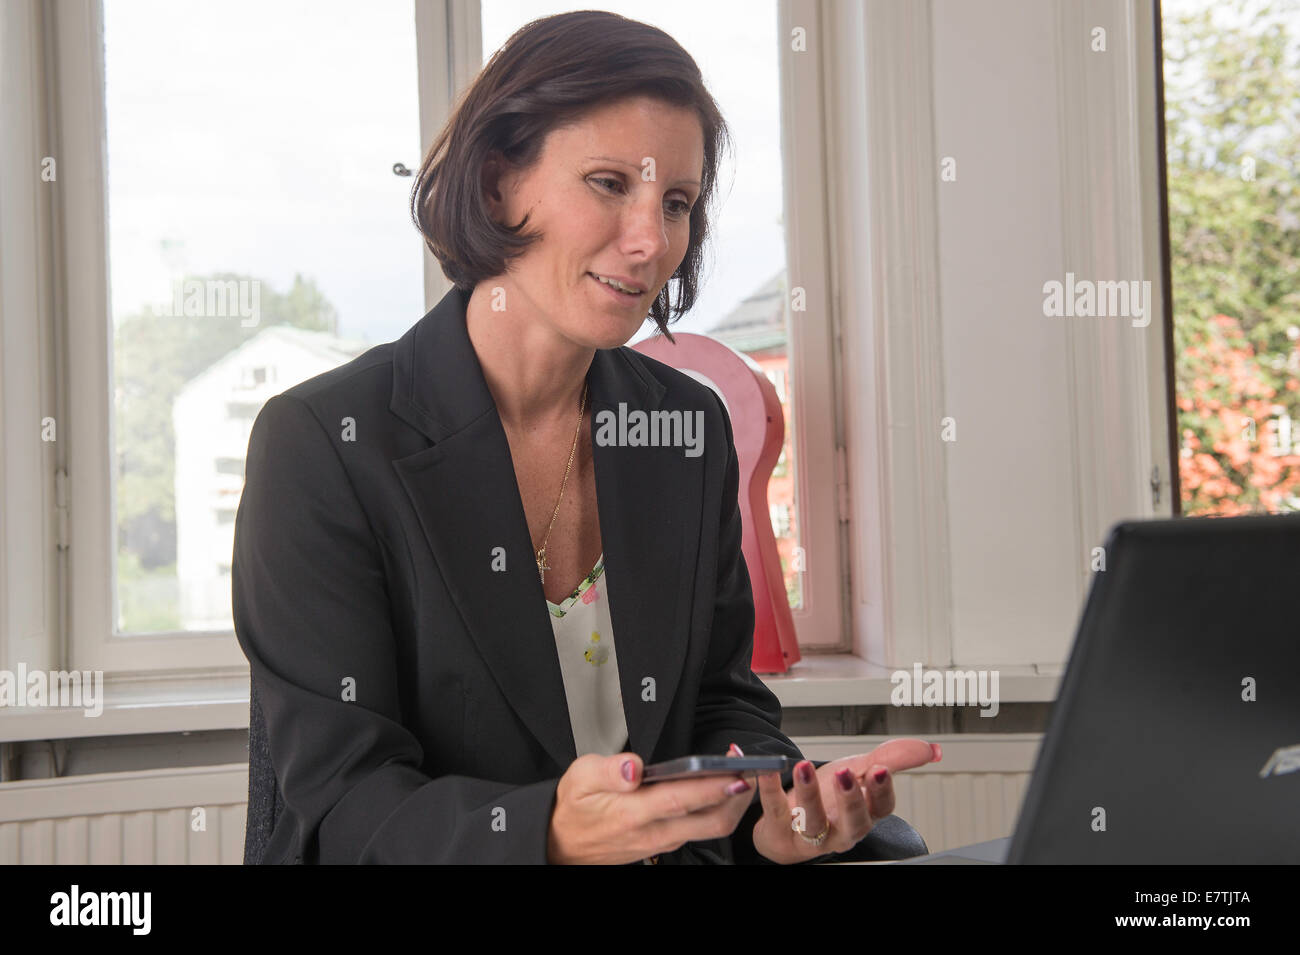 Computer trouble - Stock Image